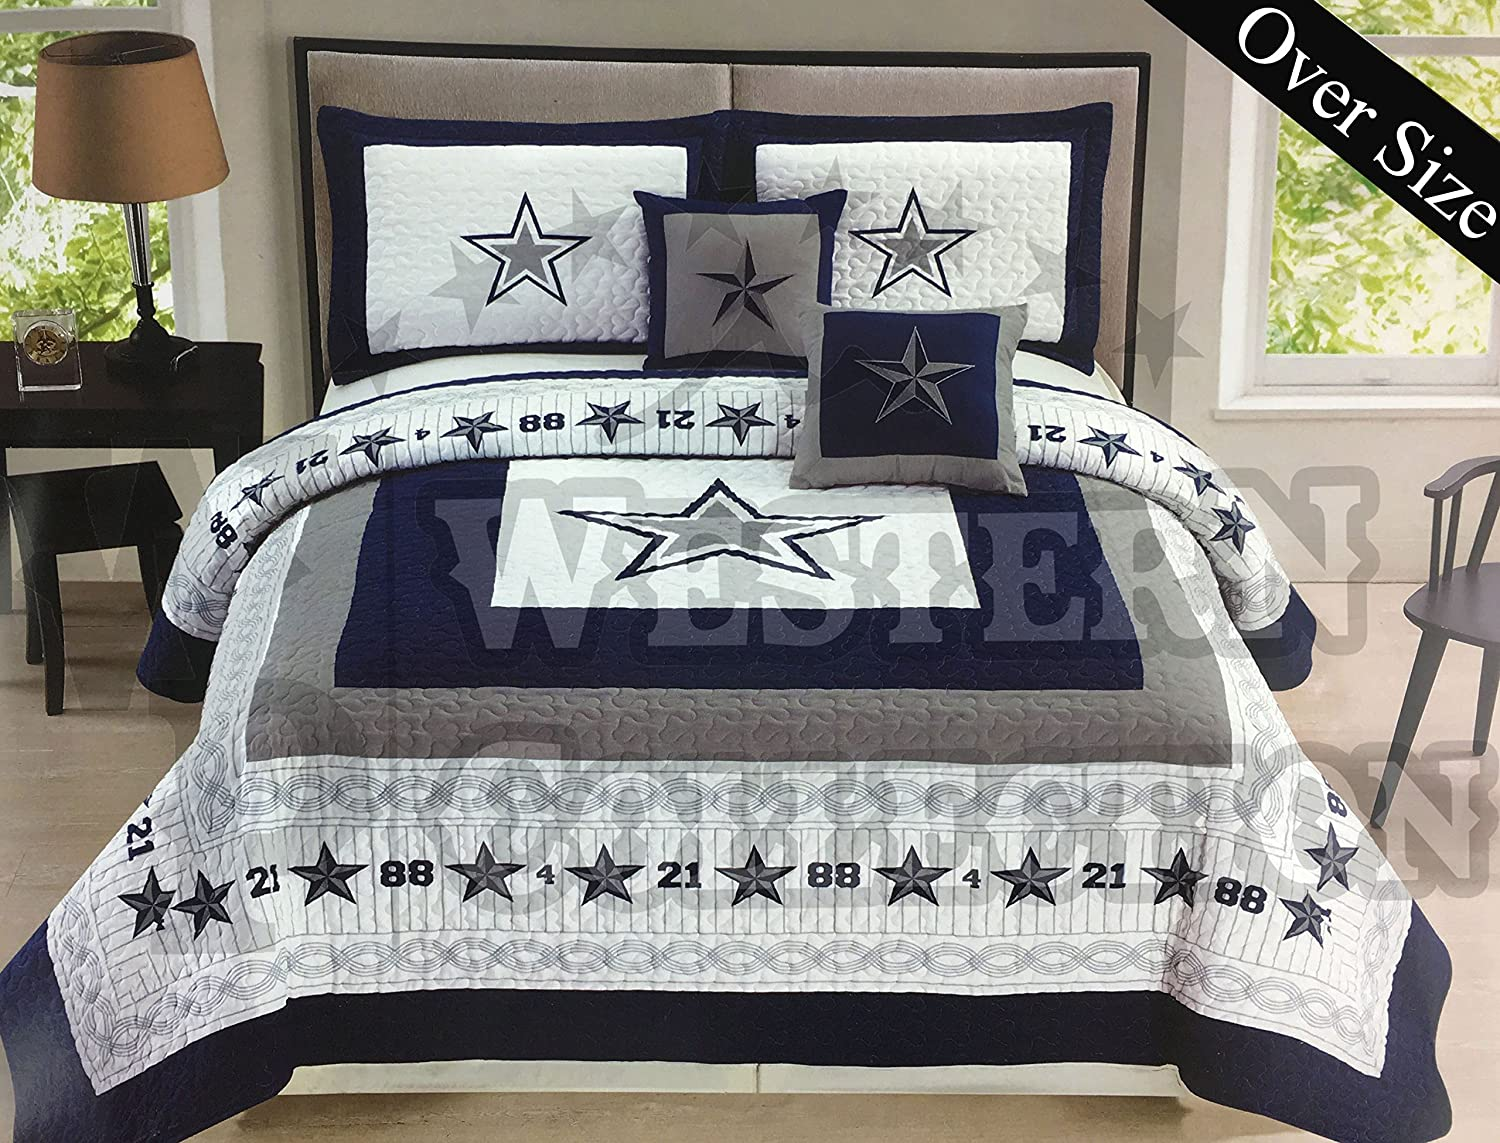 Western Collection 5 Pc Western Navy Blue White Texas Lone Star Cabin Lodge Cowboy Luxury Quilt Bedspread Oversize Comforter (Twin, Navy Quilt Set)